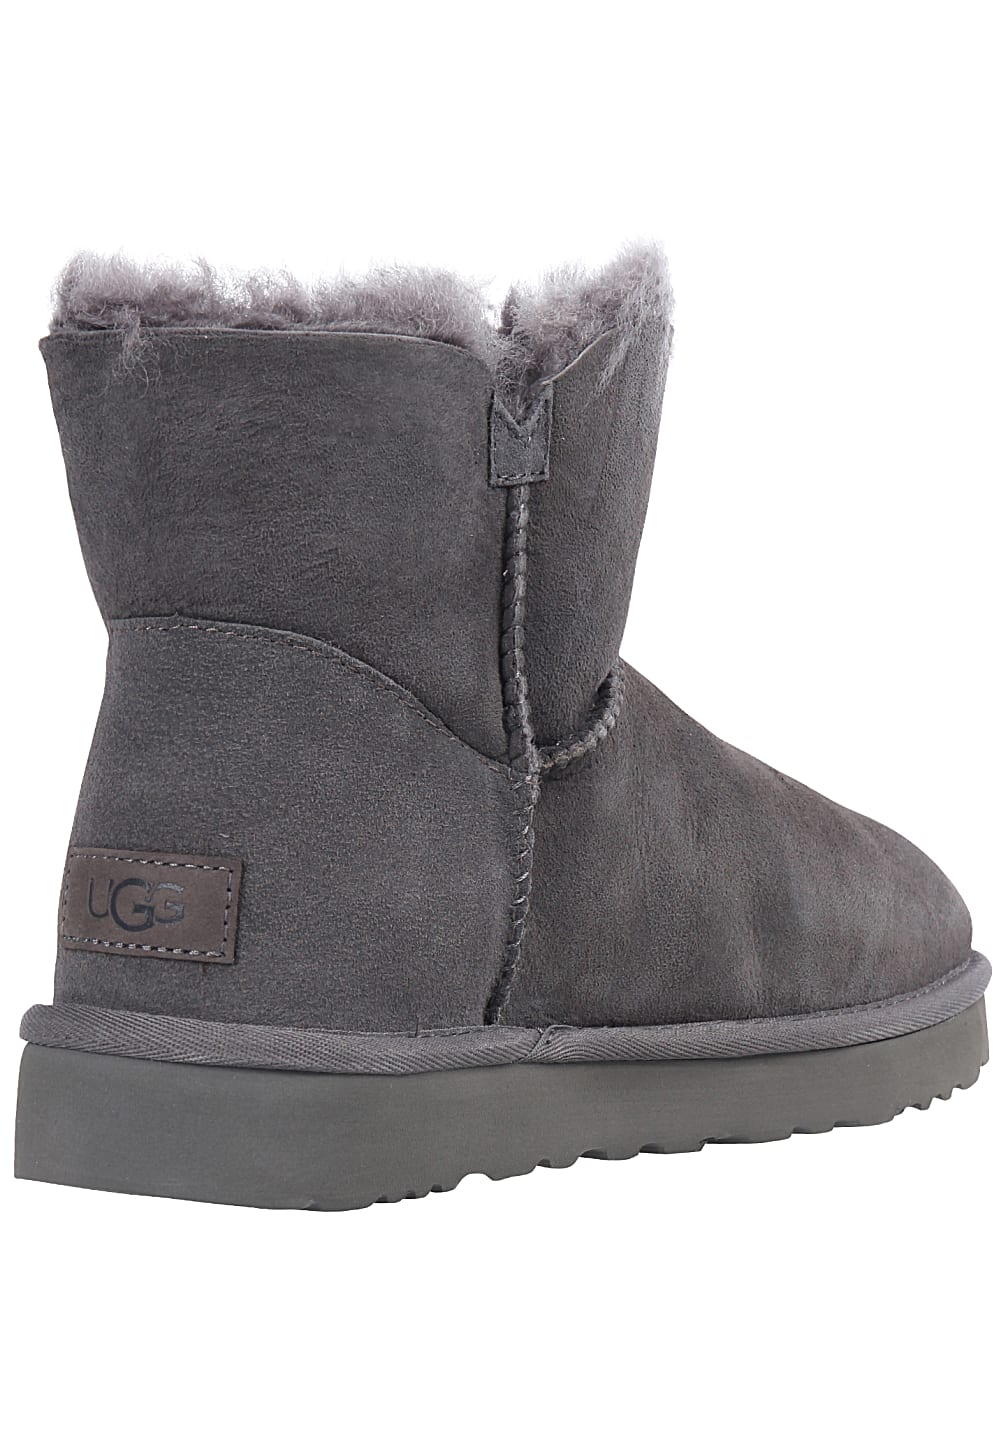 3f8c4f0282cd1 Next. -5%. UGG. Mini Bailey Button II - Boots for Women. Regular ...